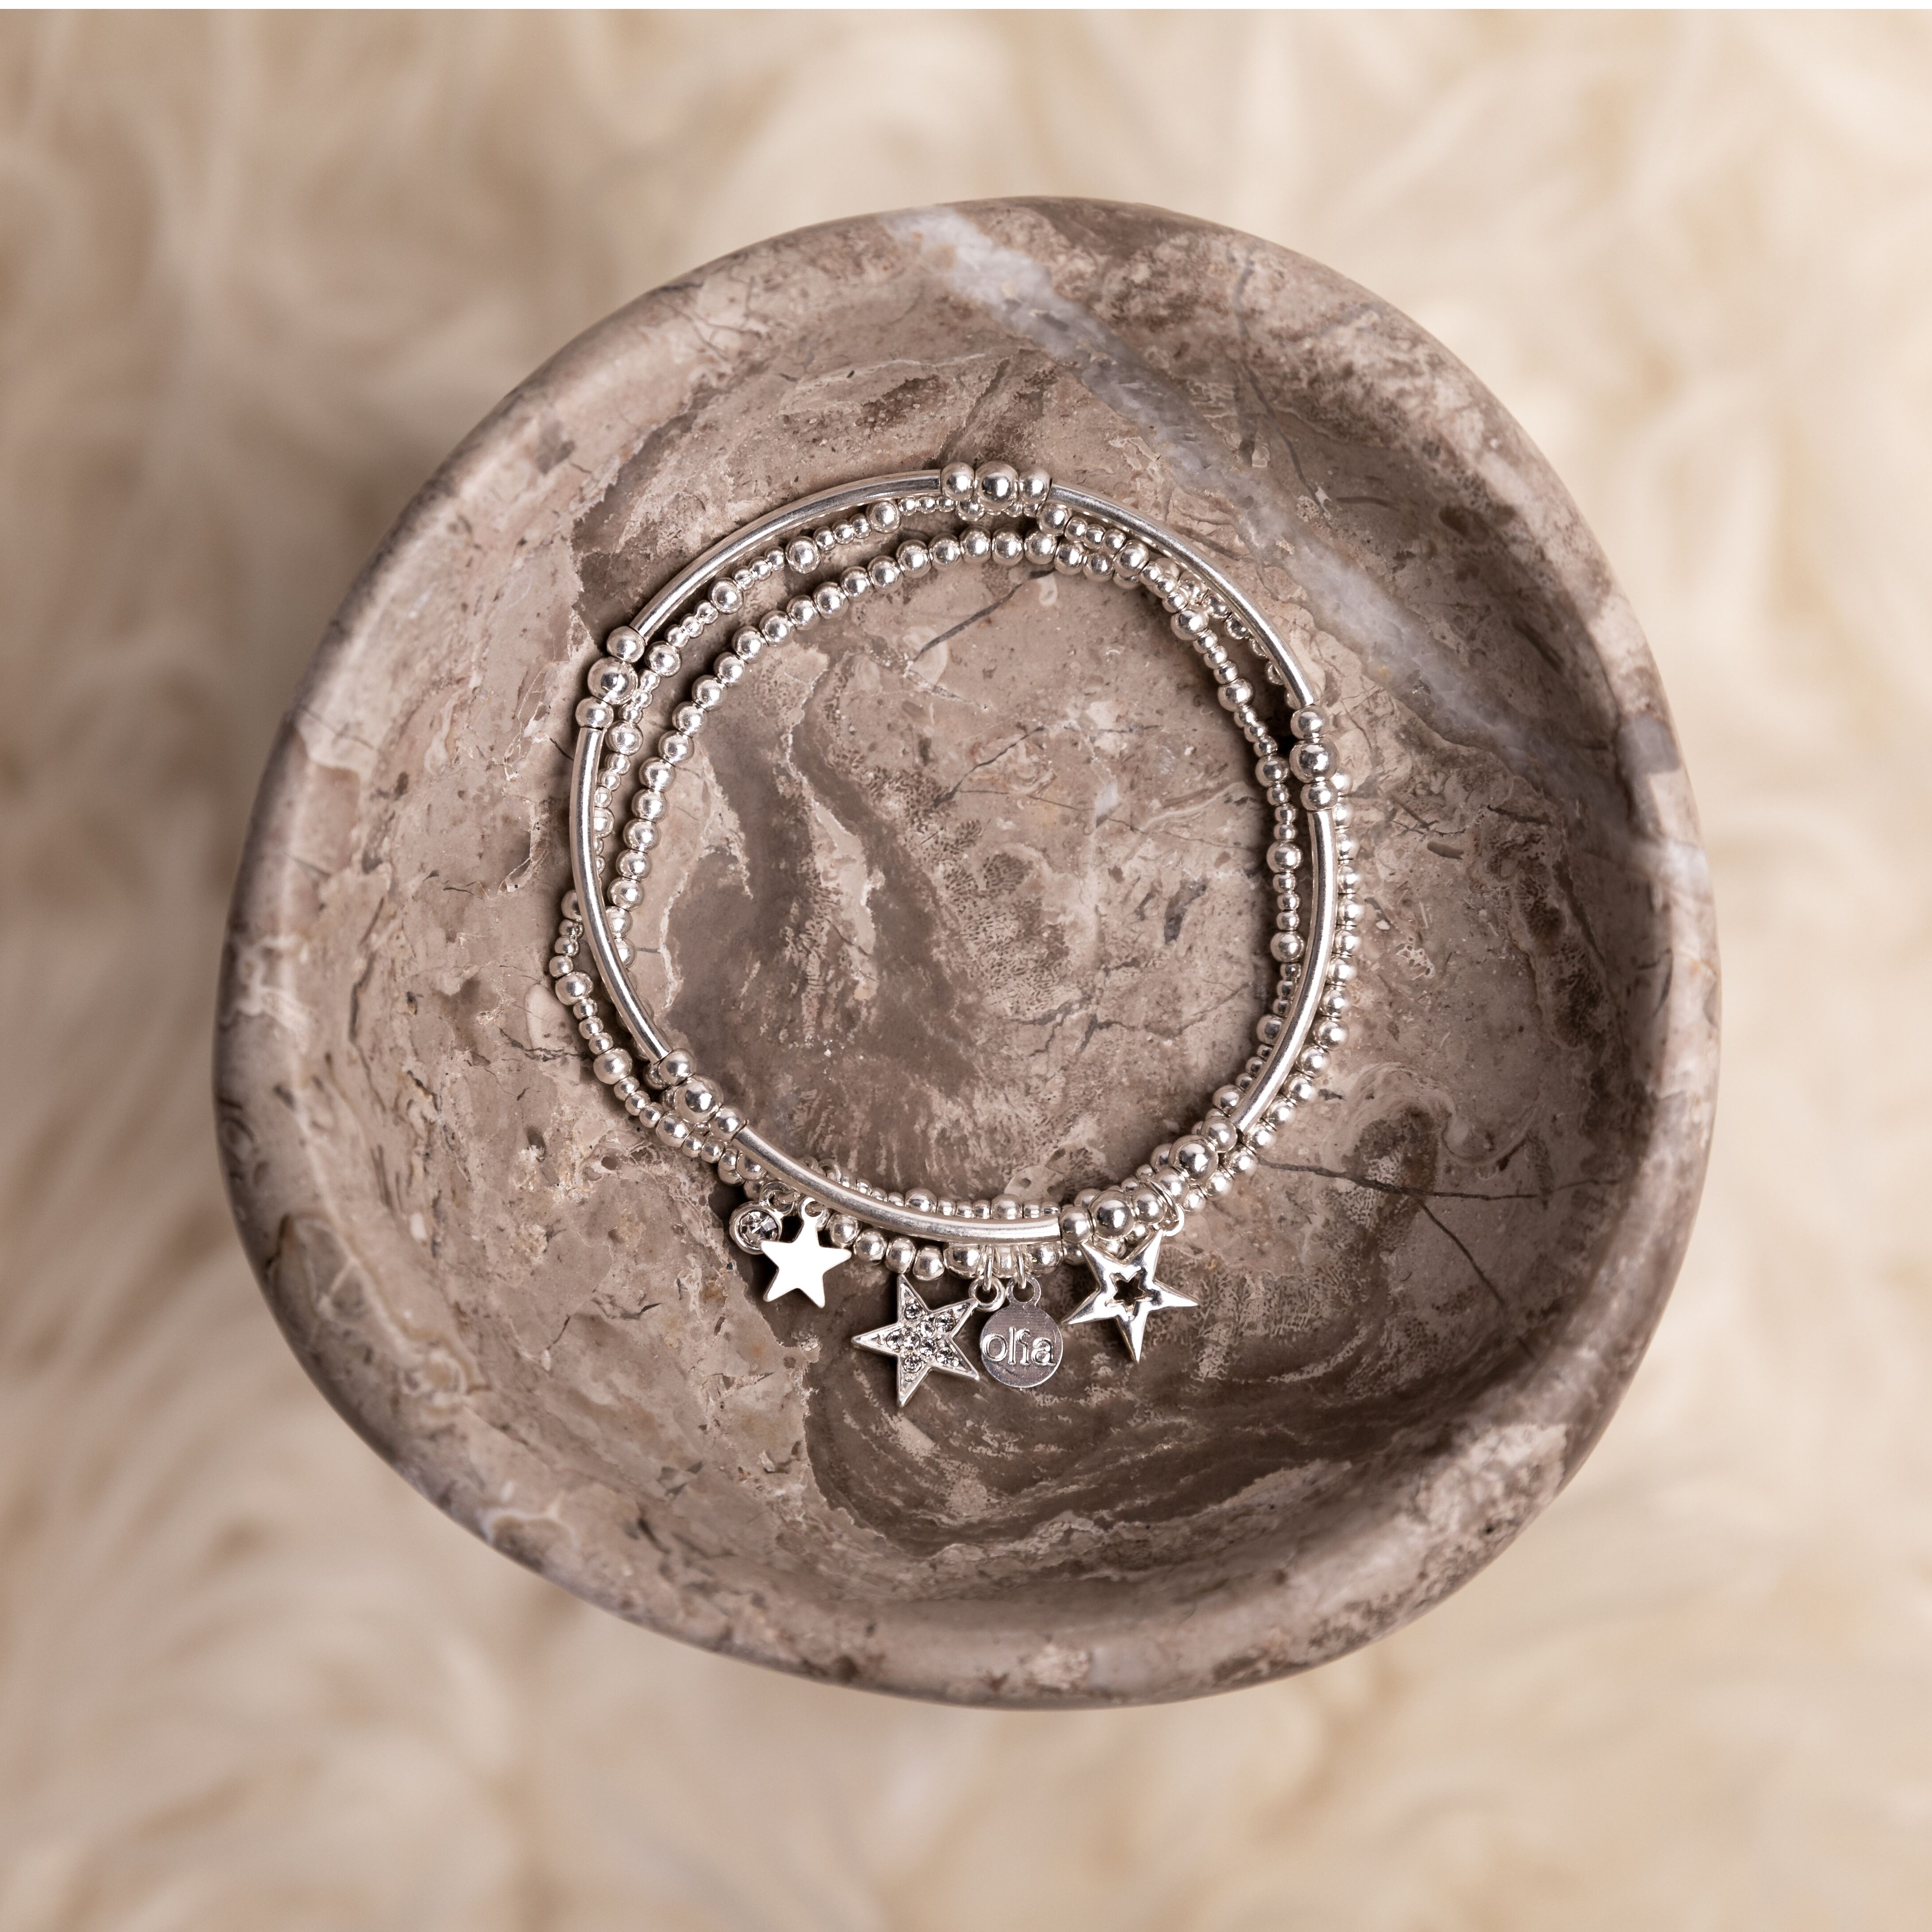 AW19 Olia Jewellery Collection